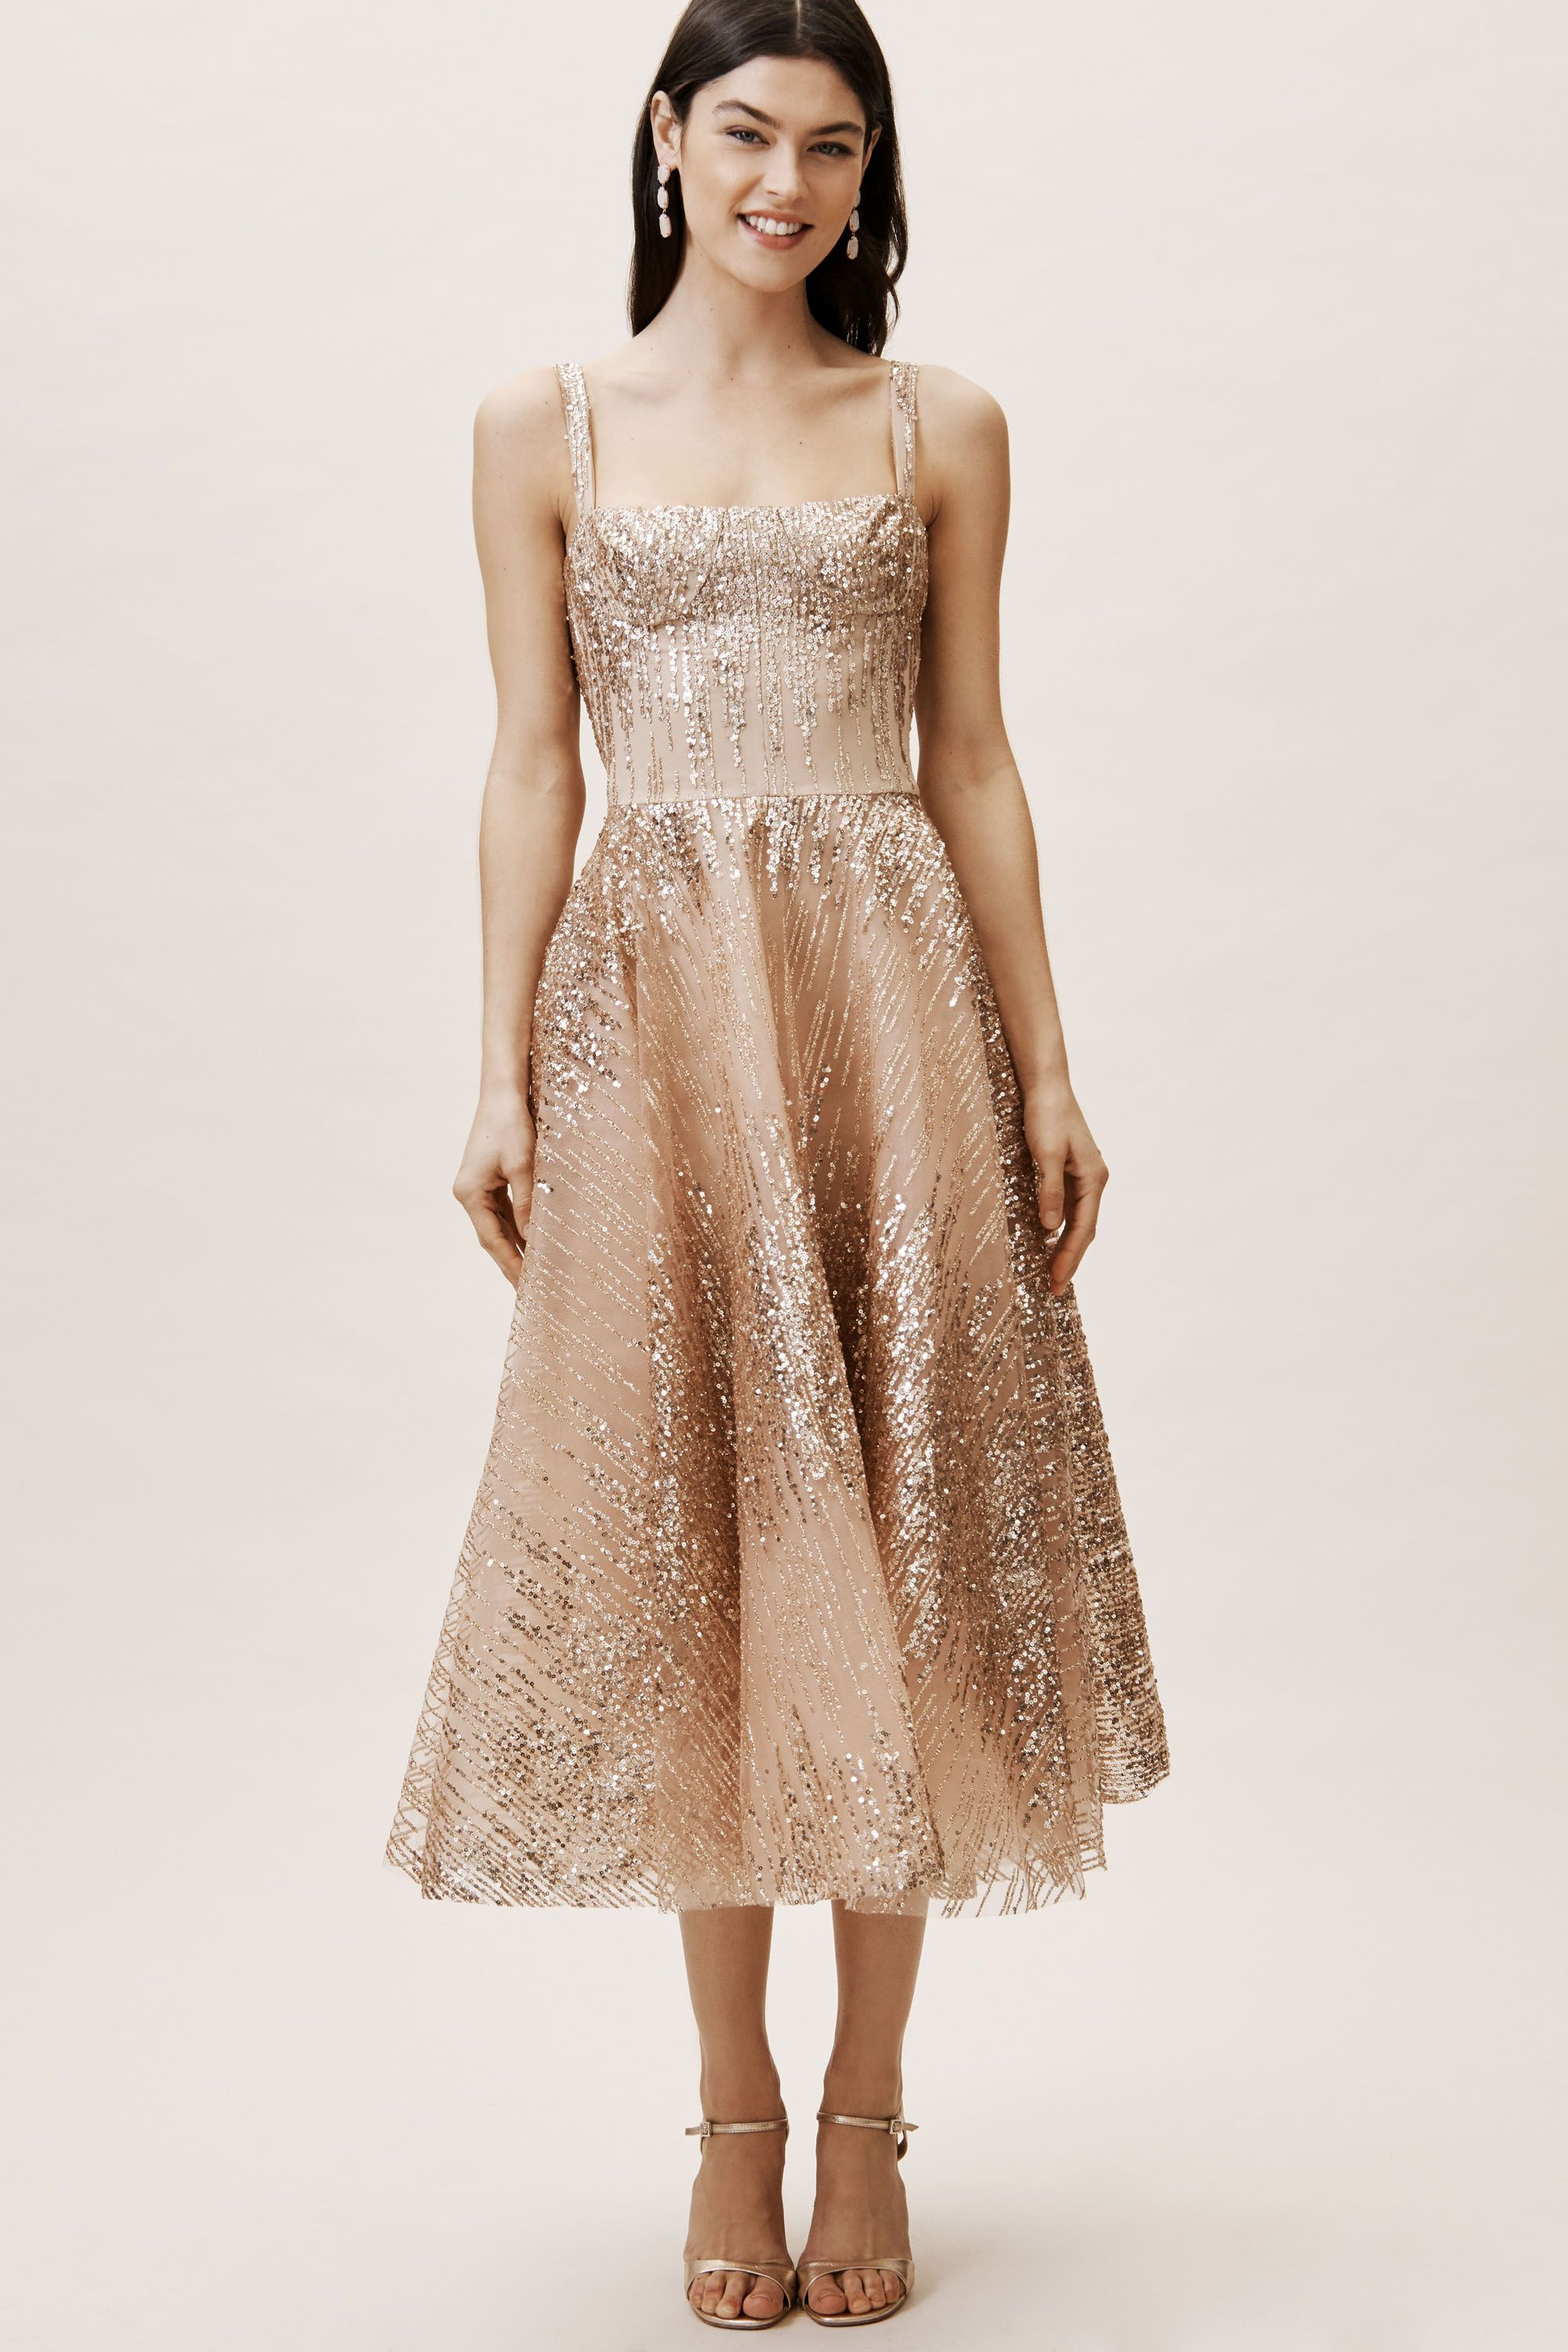 fd579cdce5f52d Pink Gold Mademoiselle Dress   BHLDN   D R E S S in 2019   Dresses ...